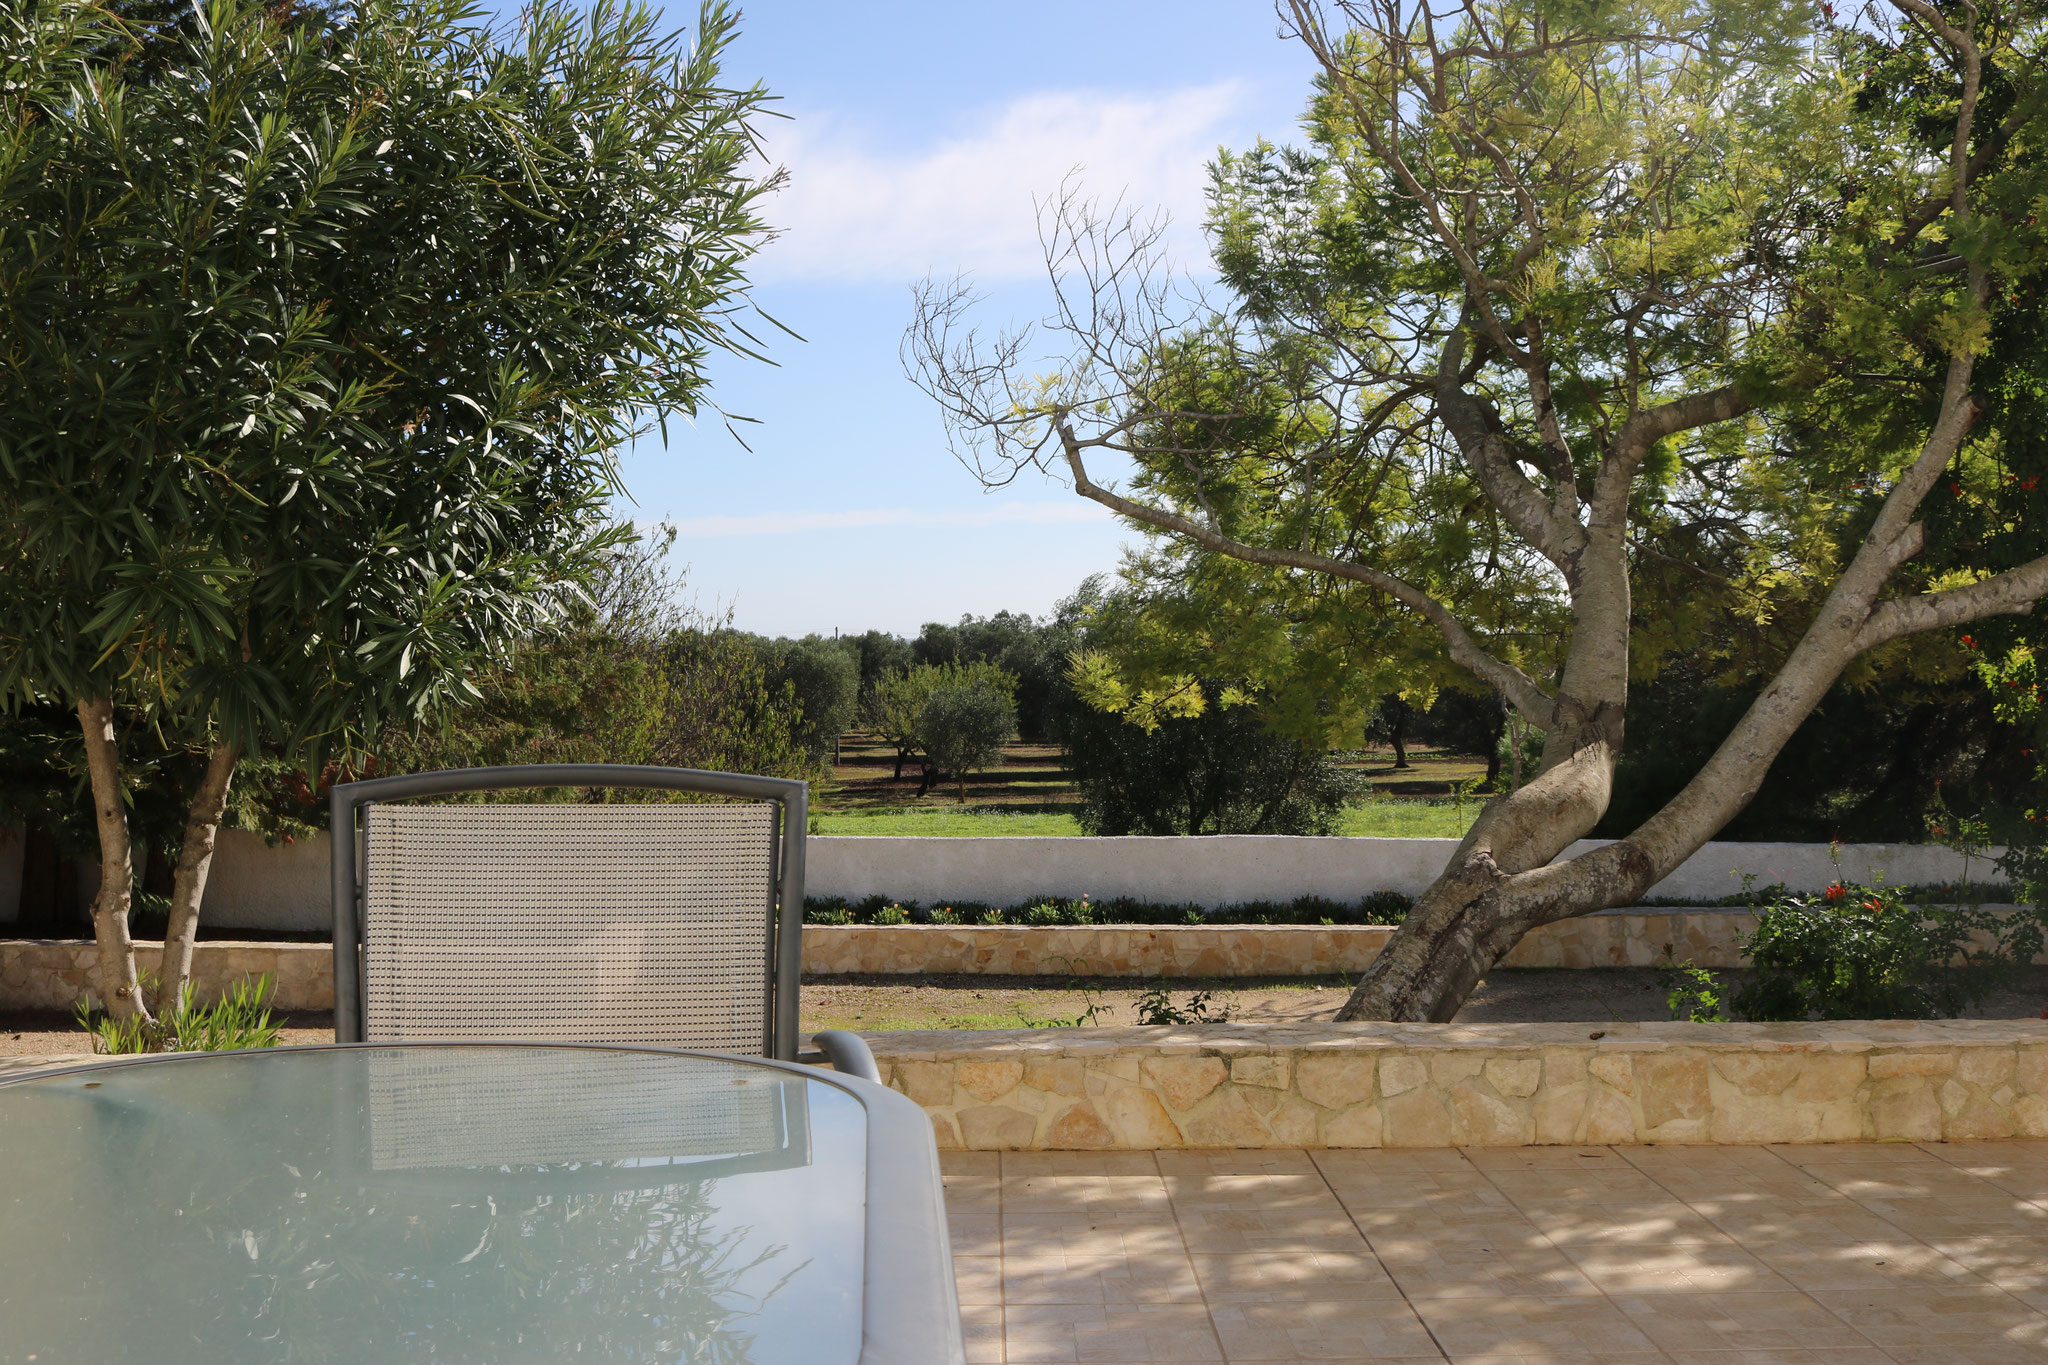 Lecce 5 - Terrace and view on the olive trees